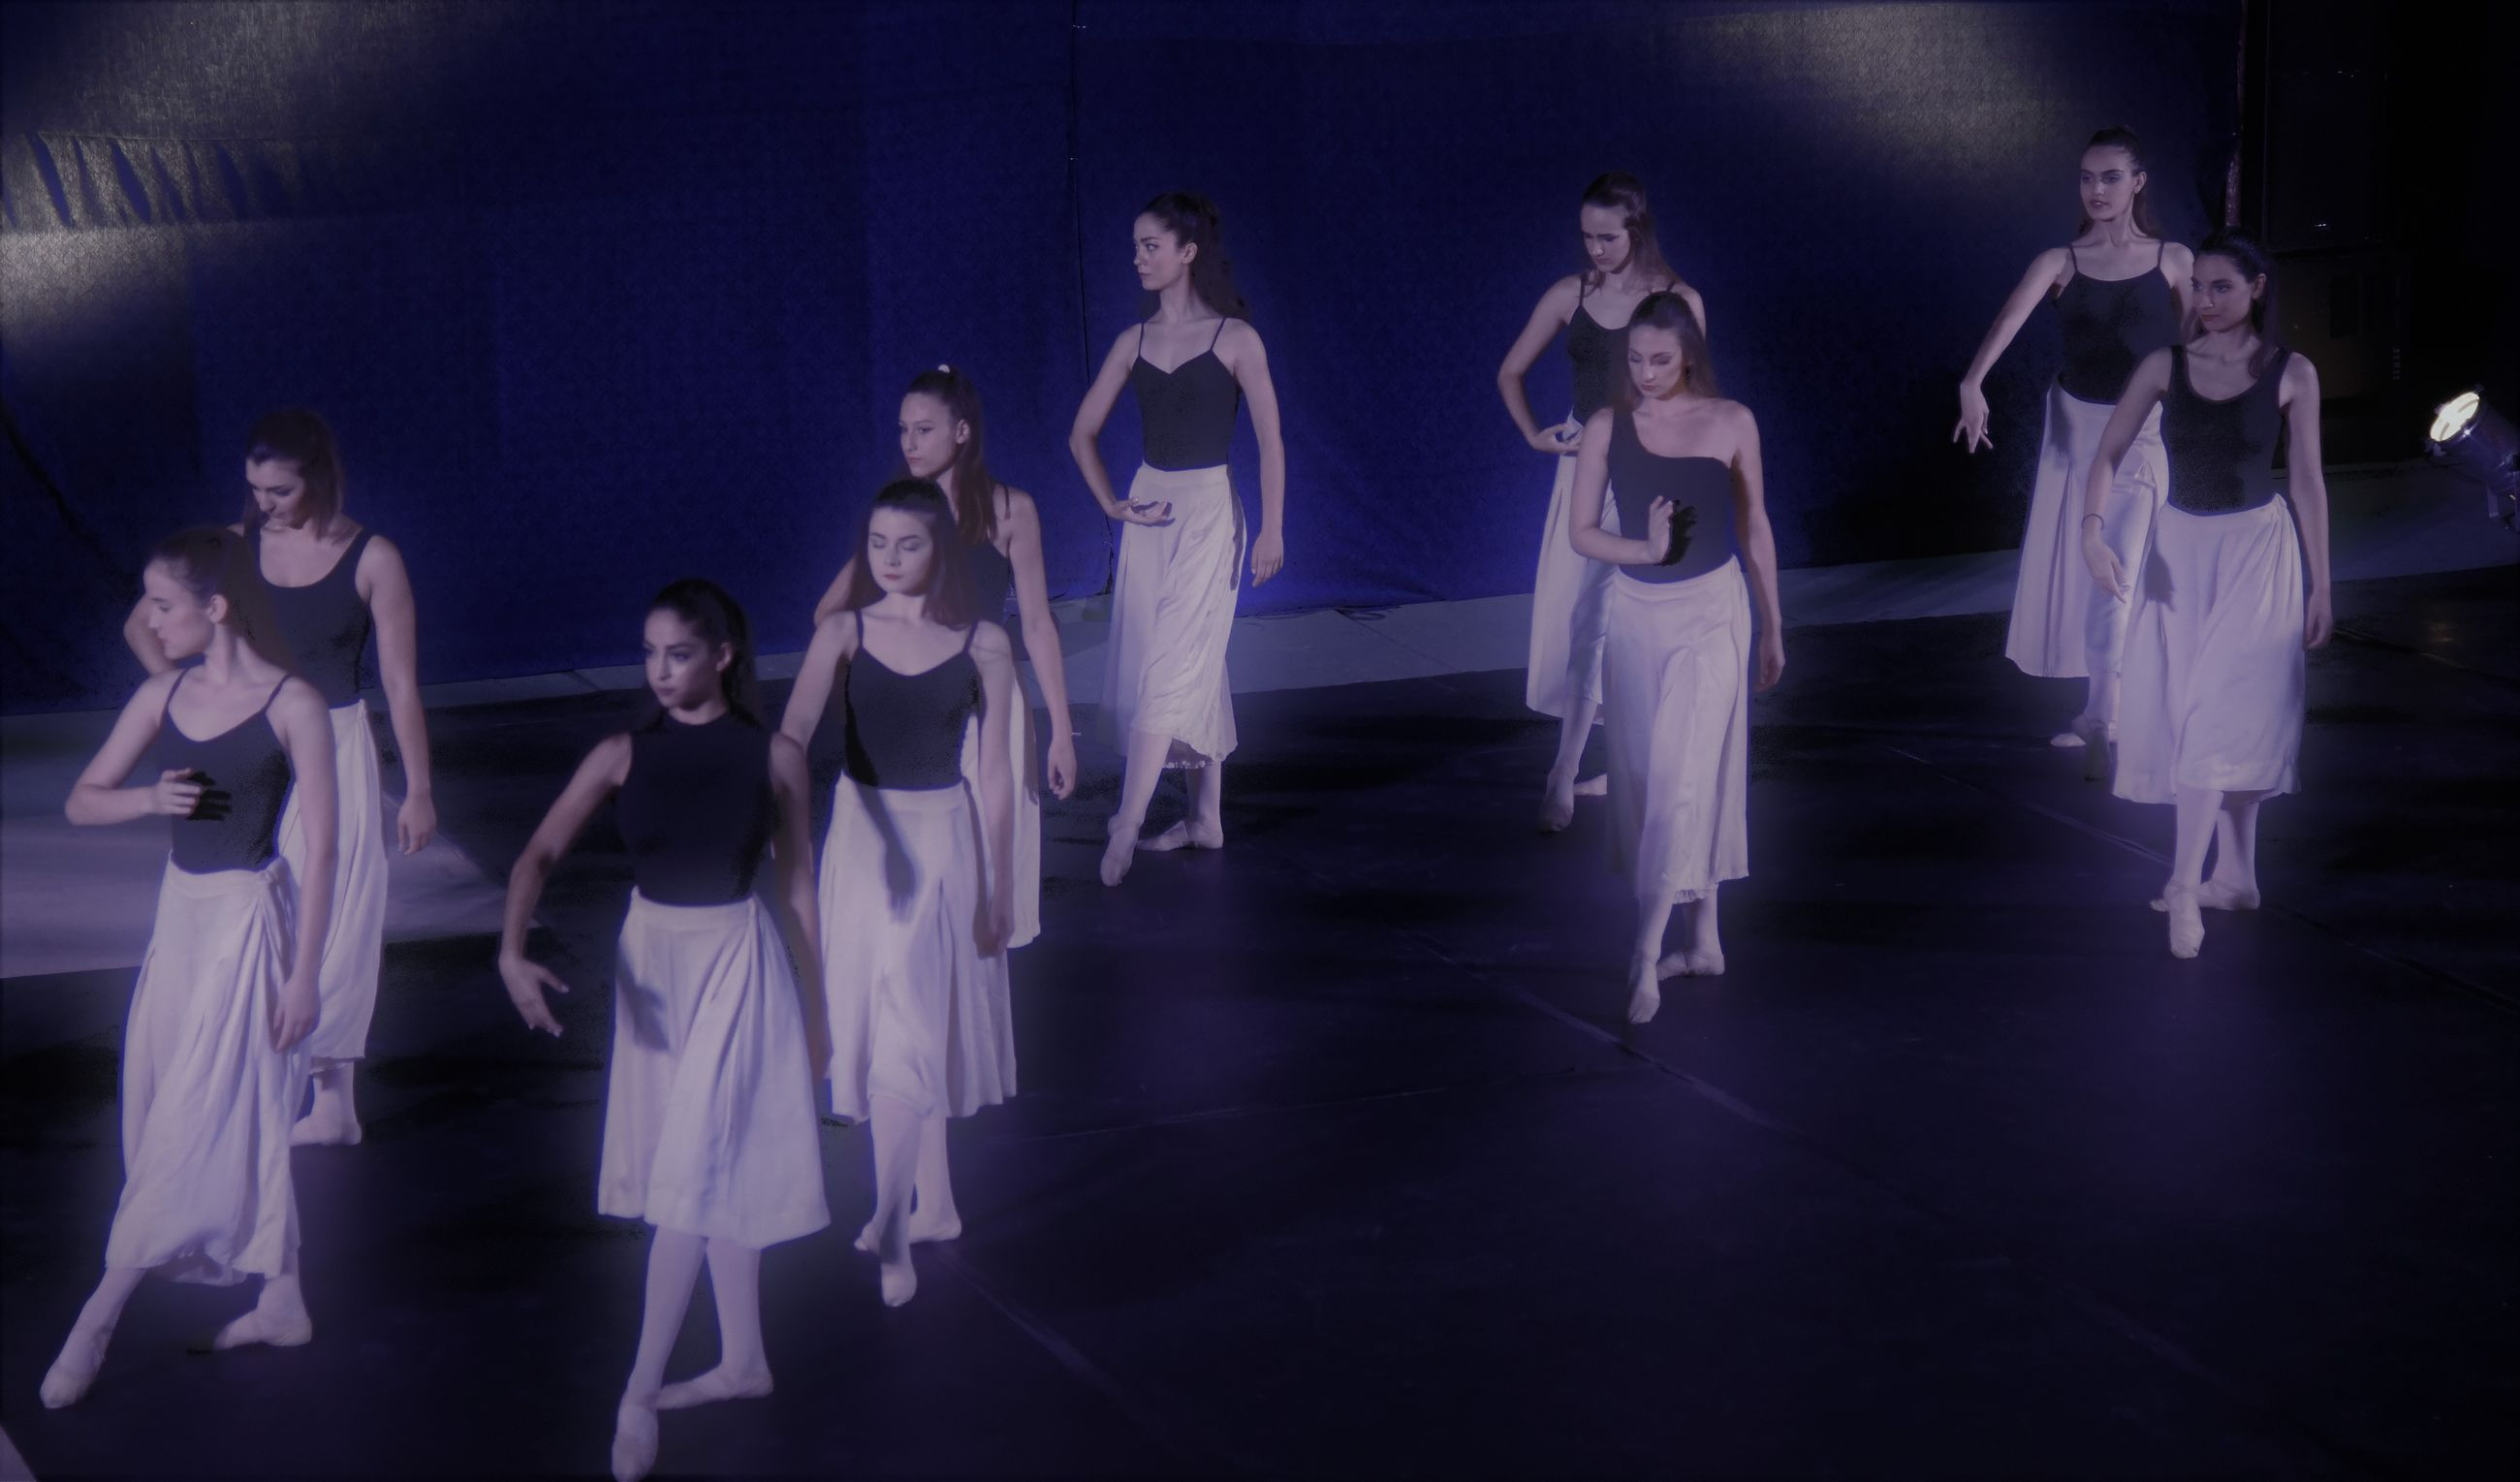 dancing, dancer, practicing, ballet, performance, ballet dancer, full length, skill, leisure activity, large group of people, grace, performing arts event, indoors, young adult, dance floor, group of people, arts culture and entertainment, lifestyles, women, young women, stage costume, coordination, people, adult